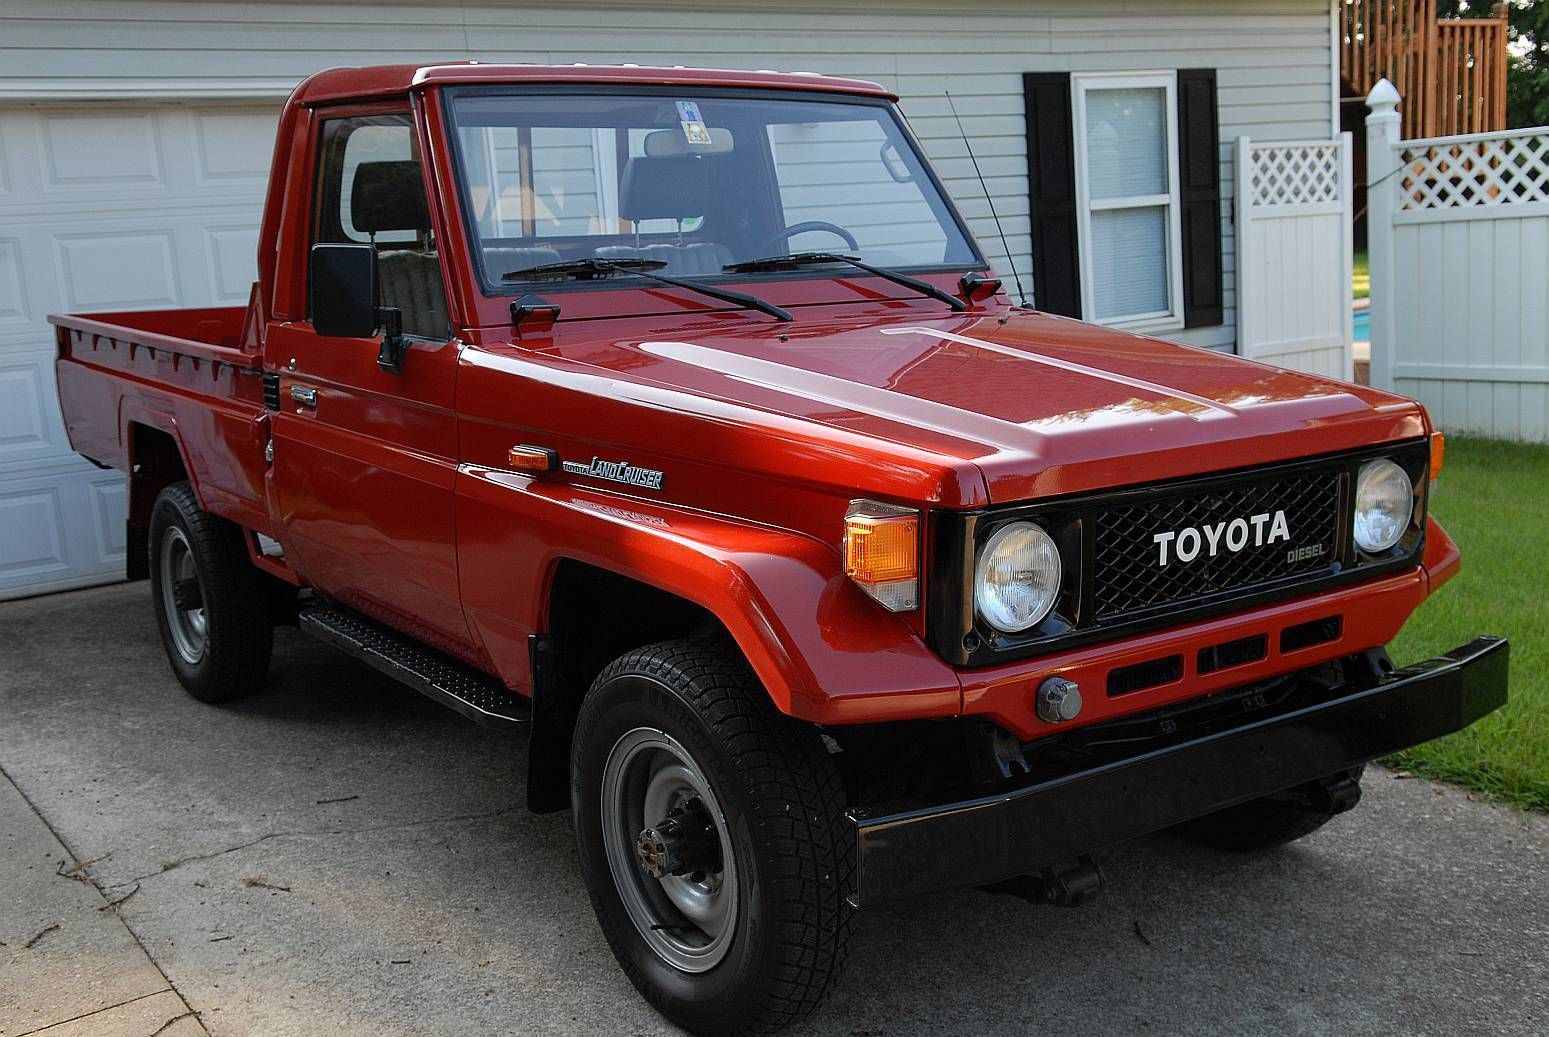 Learn More About Diesel Pick Up: 1988 Toyota Land Cruiser On Bring A  Trailer, The Home Of The Best Vintage And Classic Cars Online.